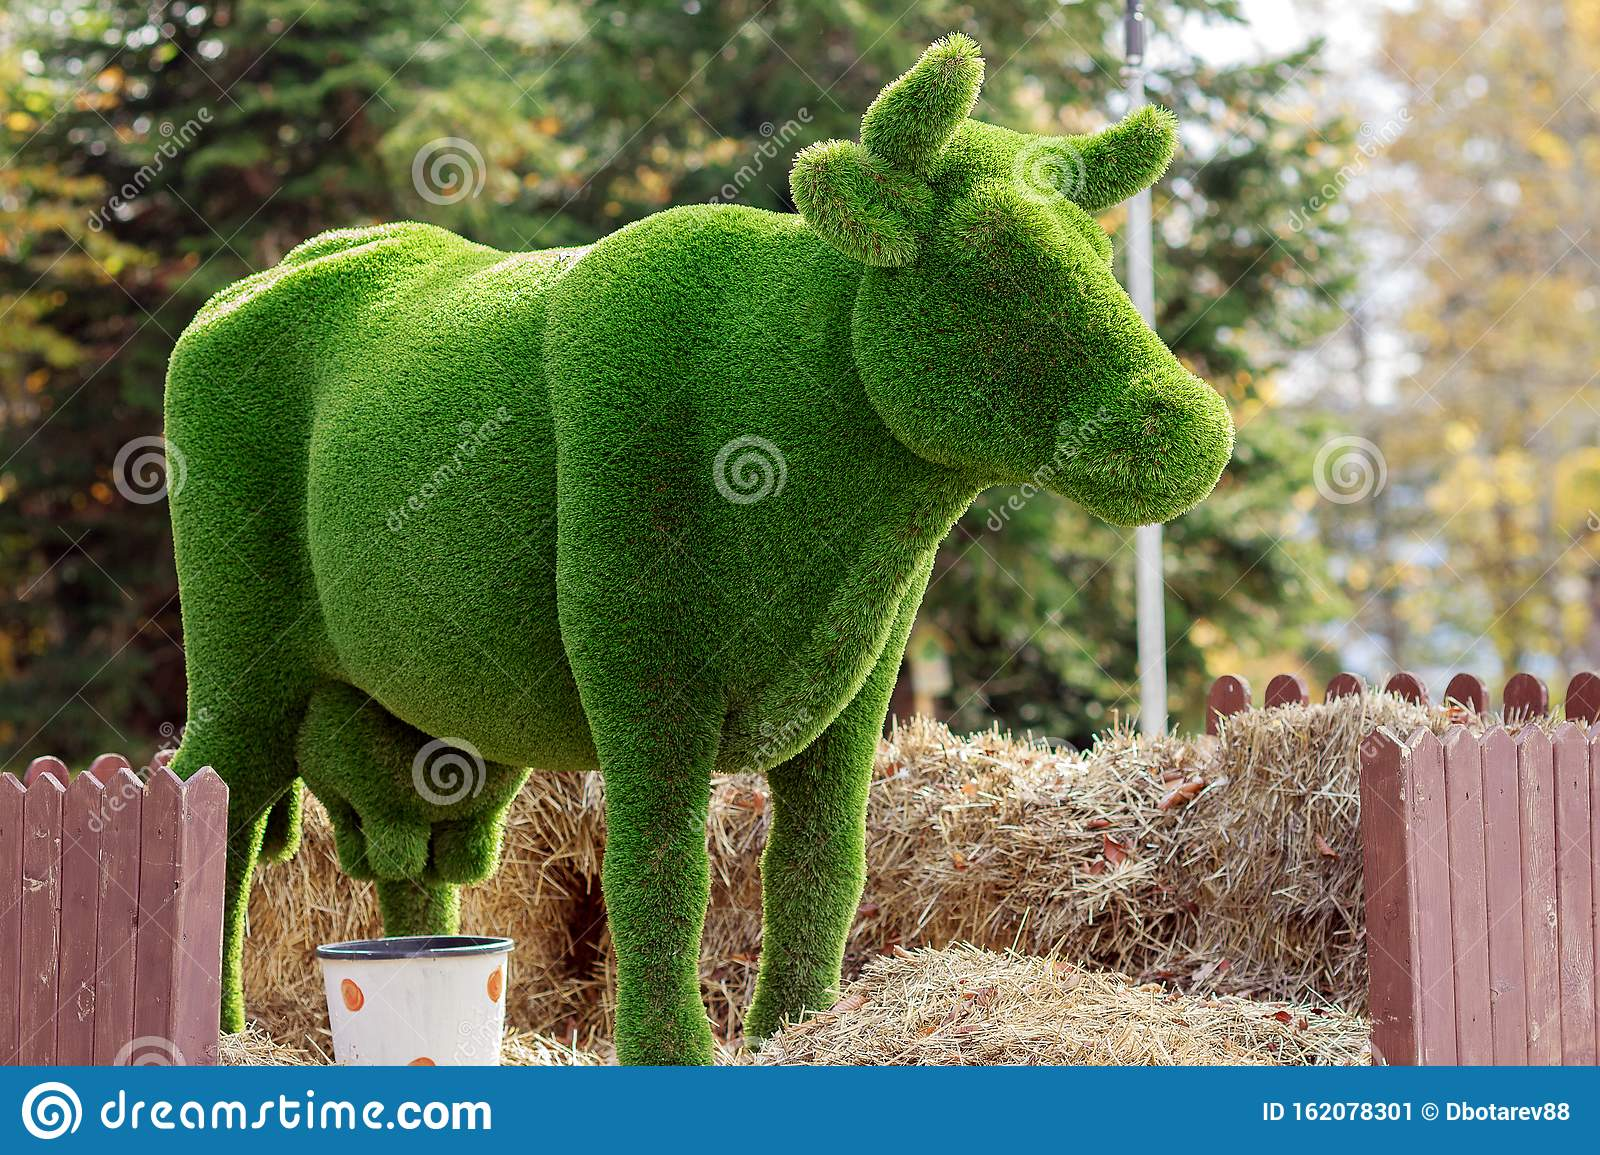 Bear Topiary Photos Free Royalty Free Stock Photos From Dreamstime